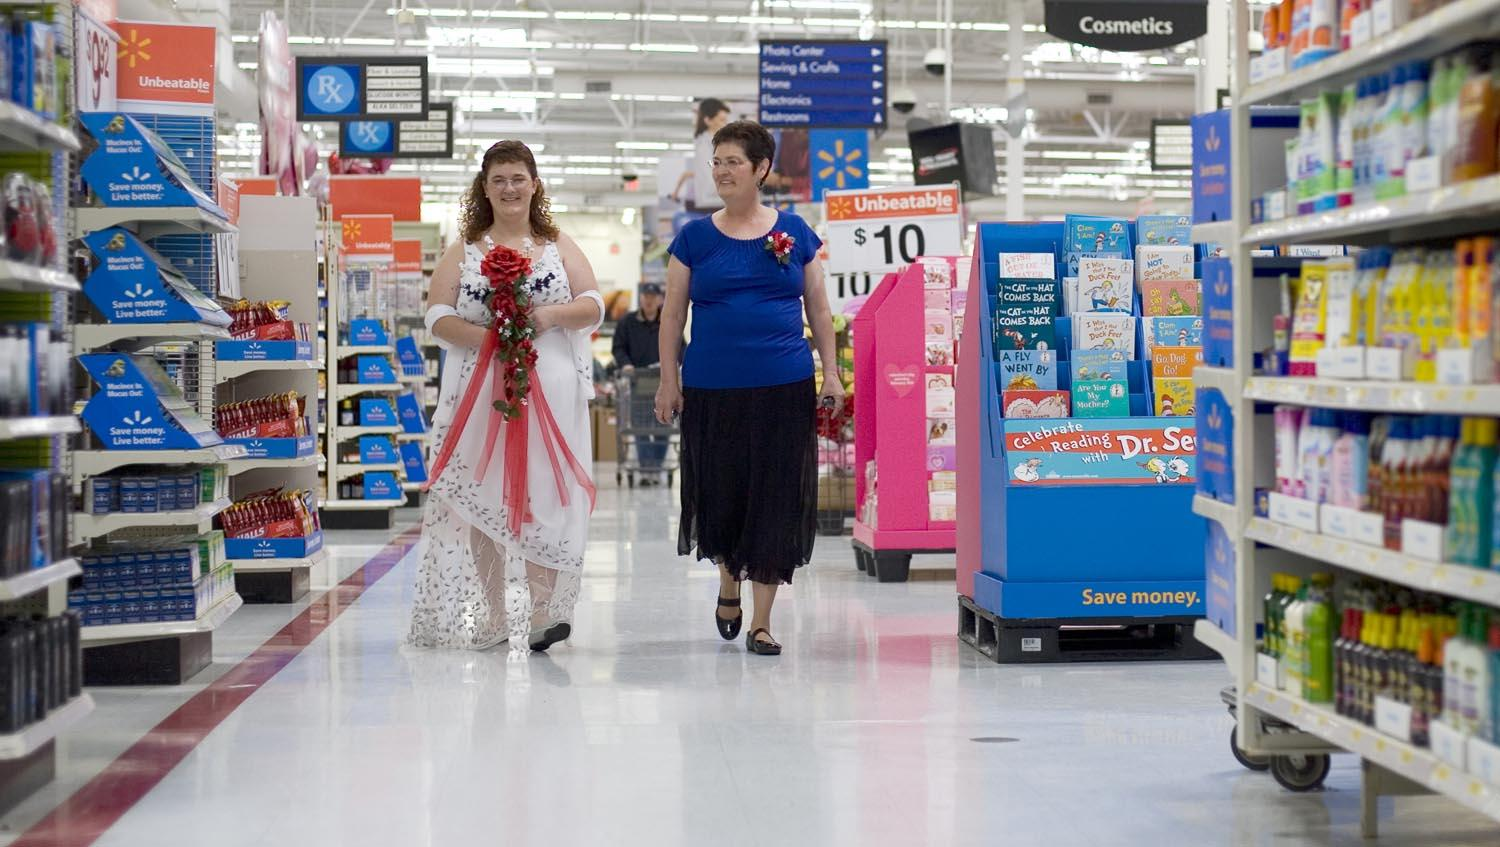 life--10-awkward-things-that-have-happened-at-walmart--walmart-wedding--4178319.jpg